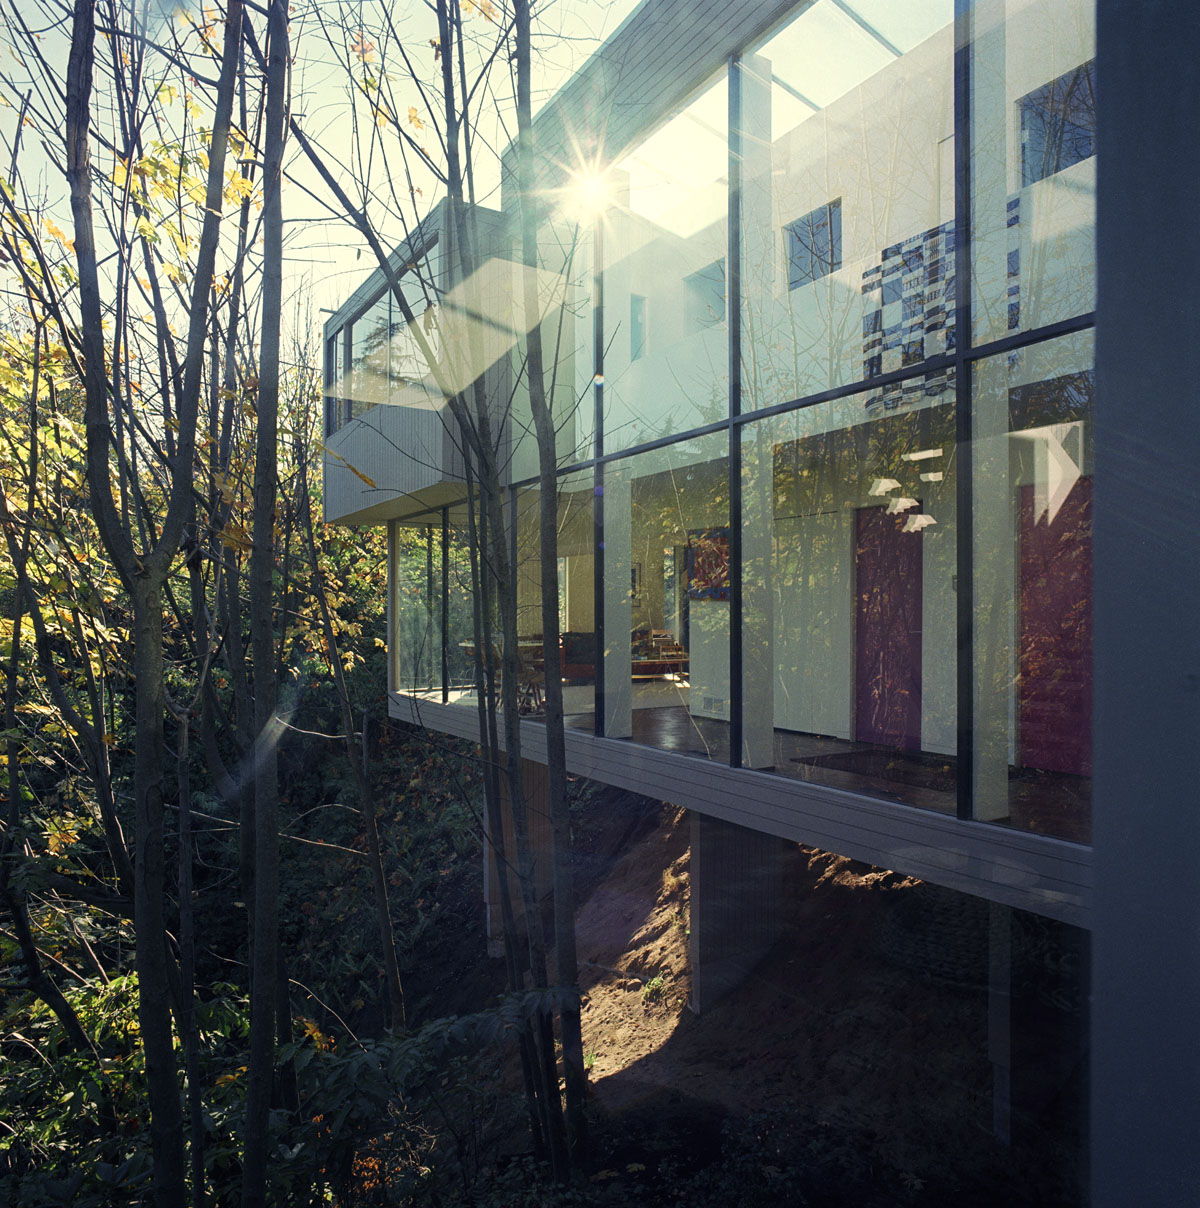 Oberlander Residence II, Vancouver Peter Oberlander and Barry Downs, Architects, 1969 Photograph by Selwyn Pullan, 1970 Courtesy of West Vancouver Museum.